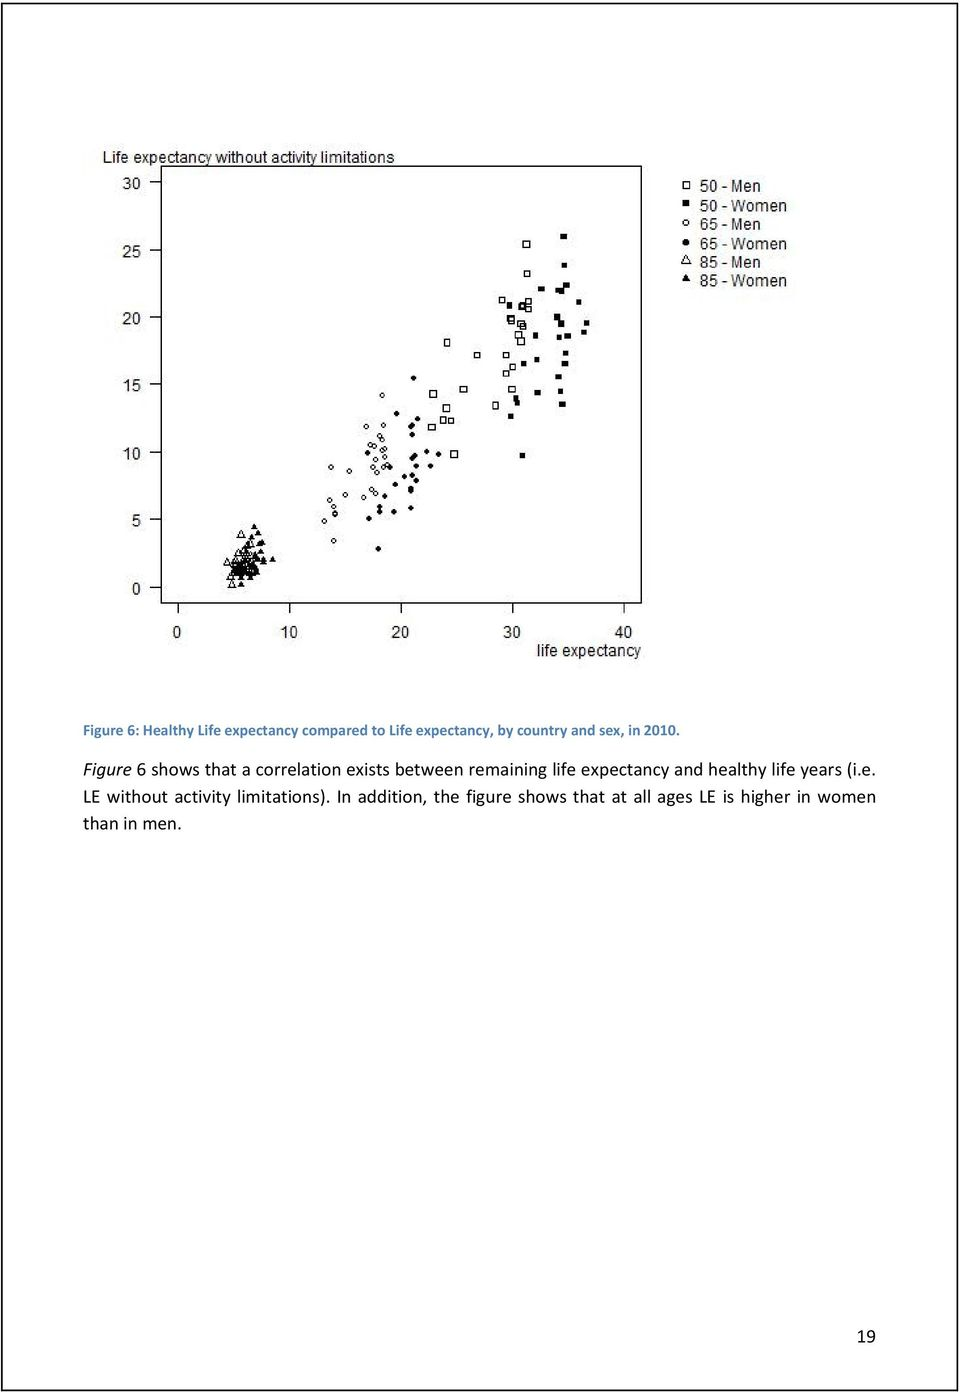 Figure 6 shows that a correlation exists between remaining life expectancy and